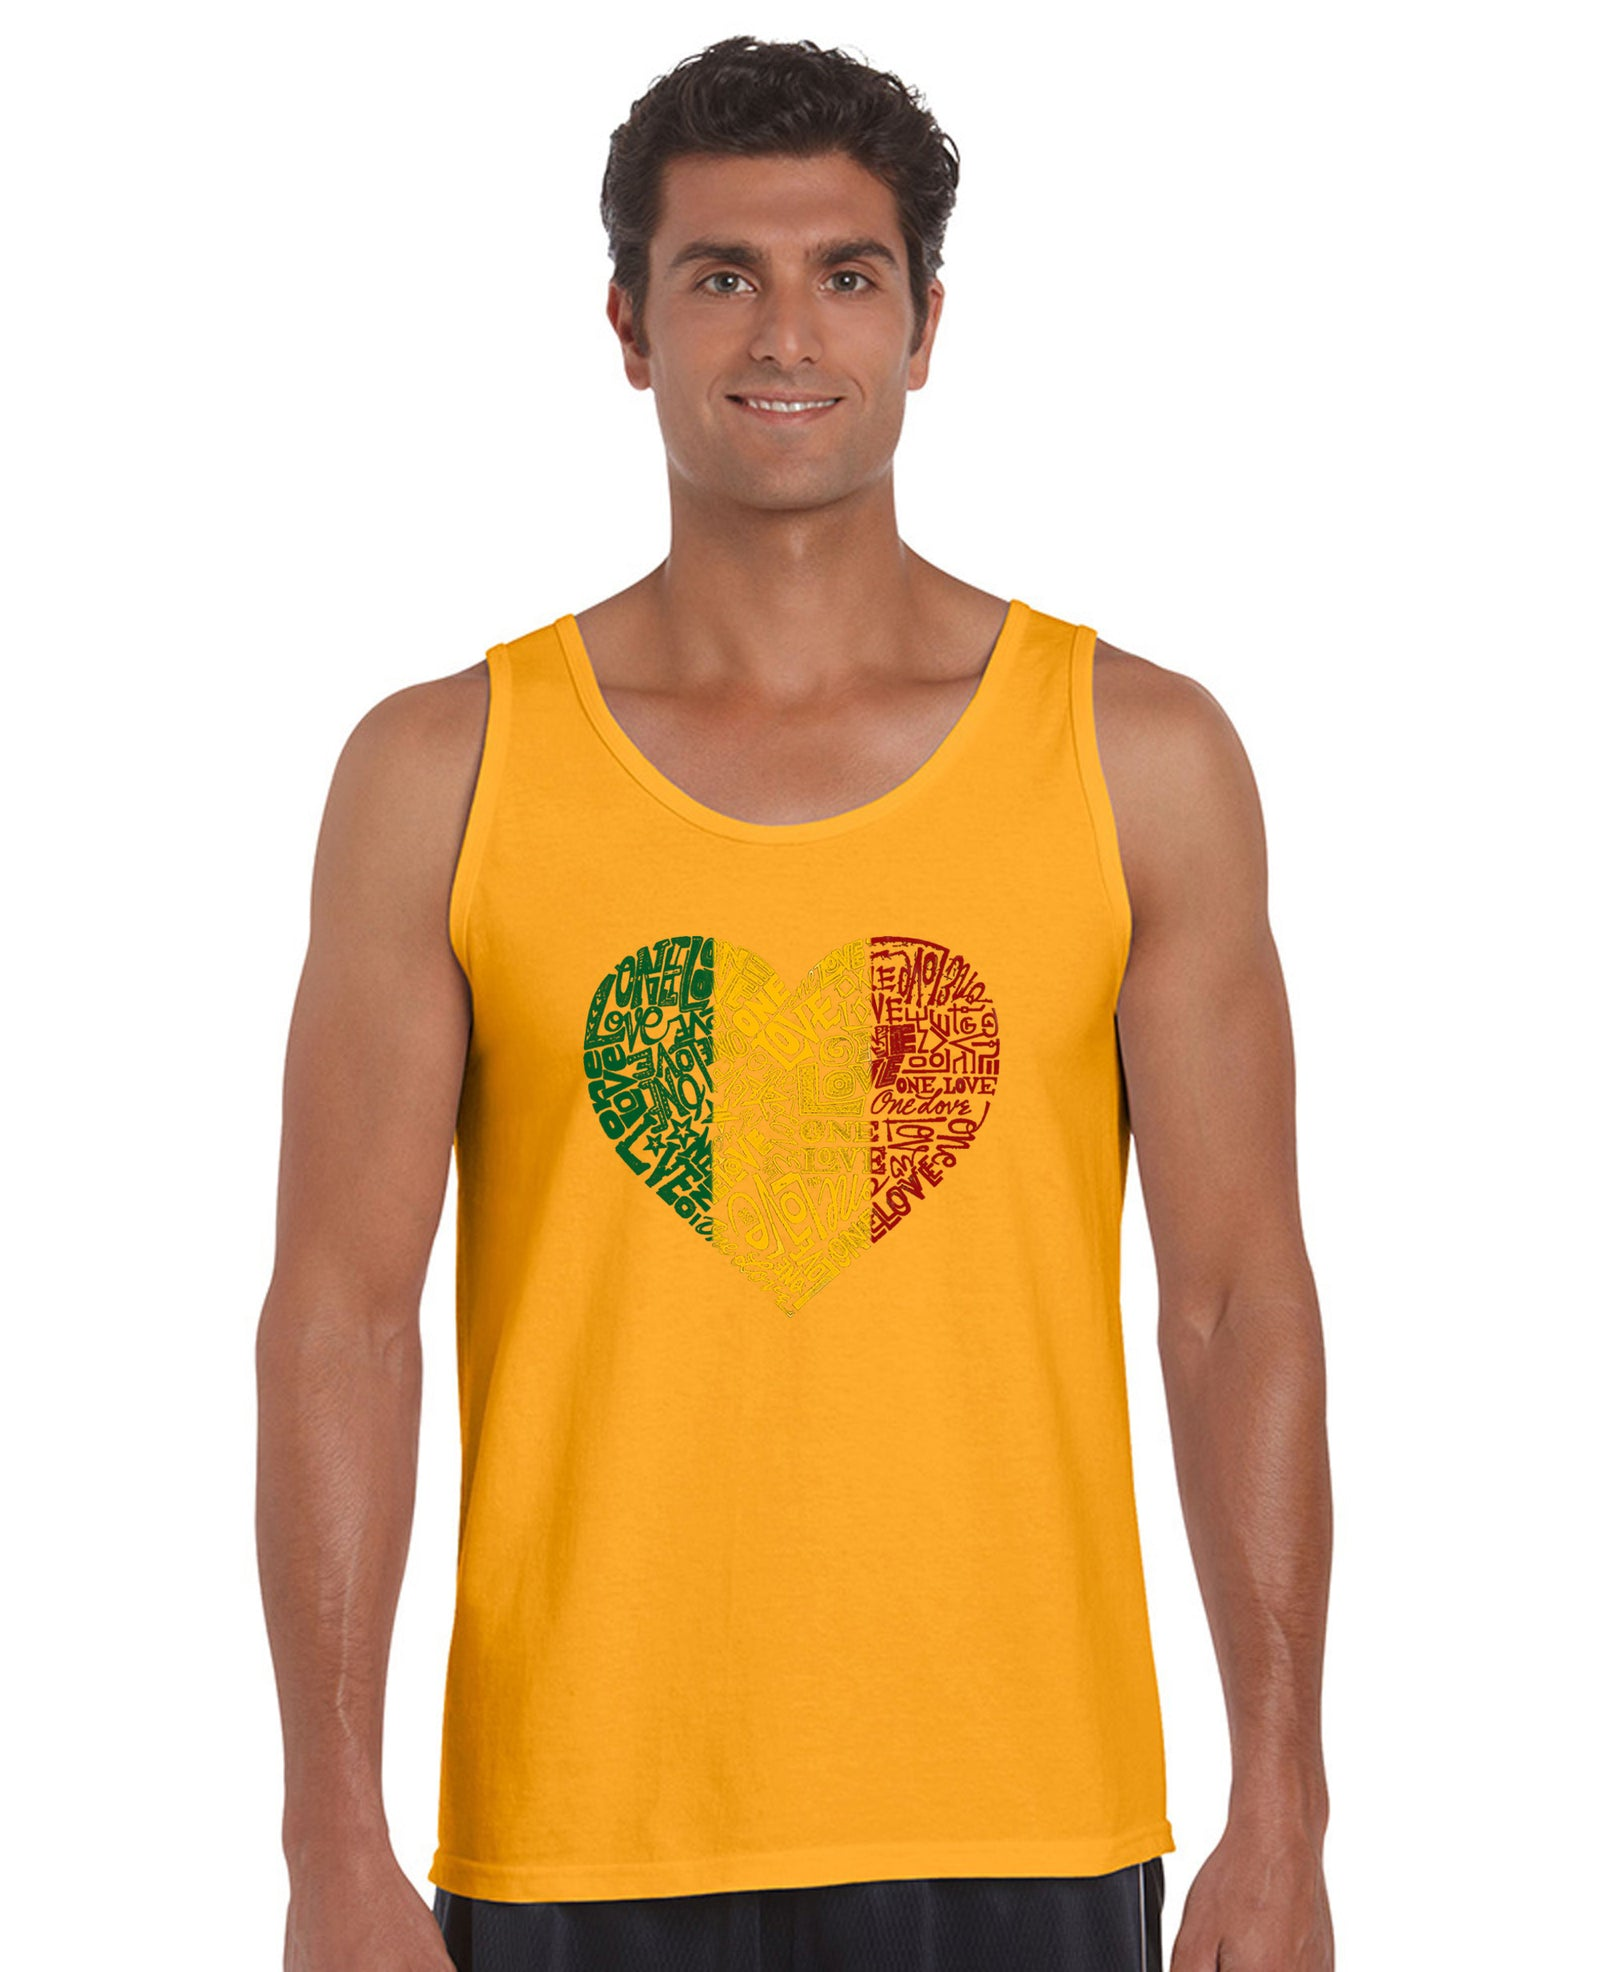 Mens Tank Top  - One Love